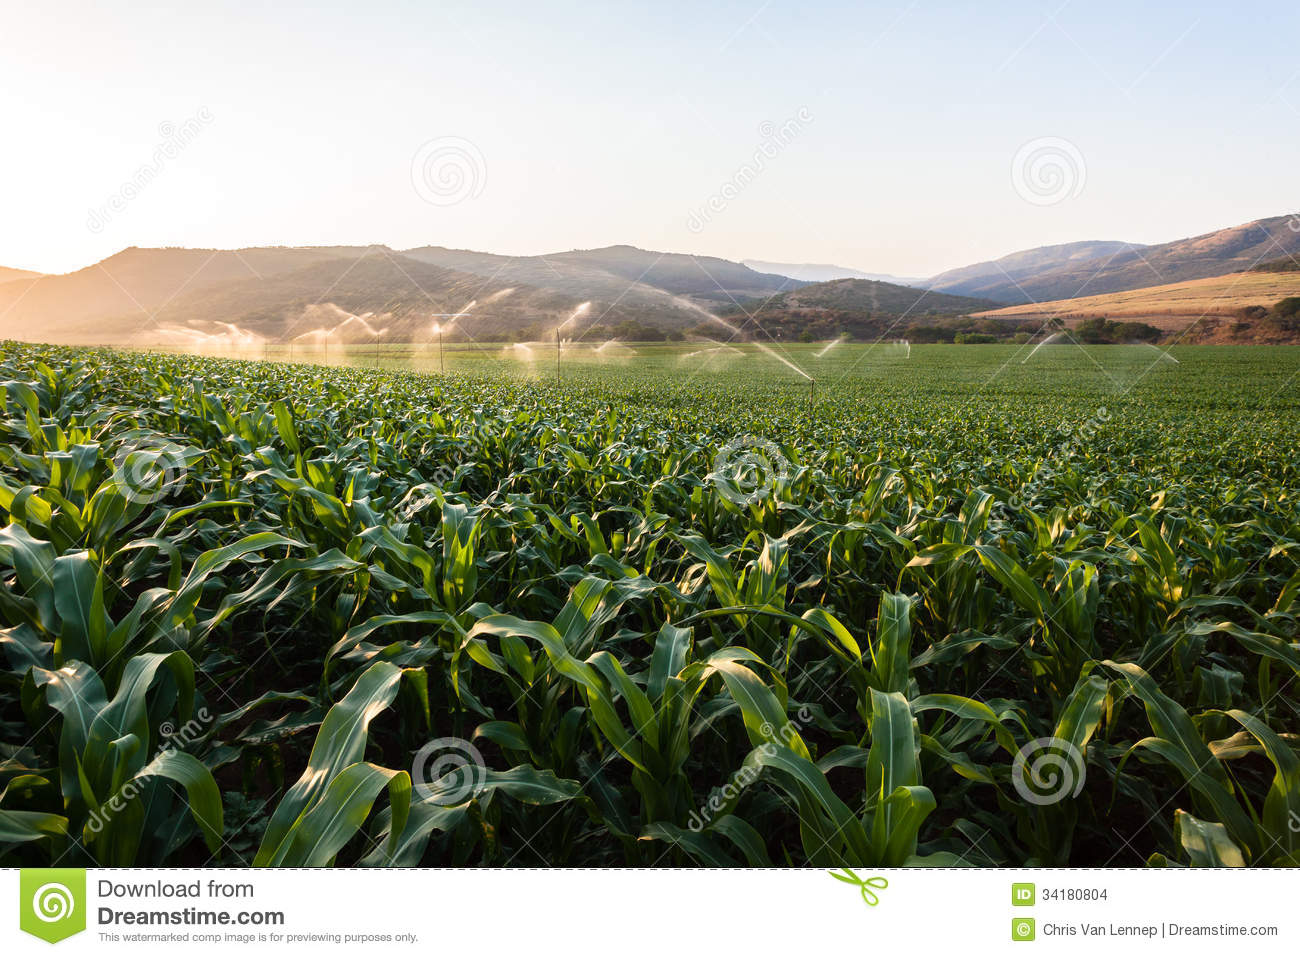 More Similar Stock Images Of   Farming Maize Crop Water Sprinklers